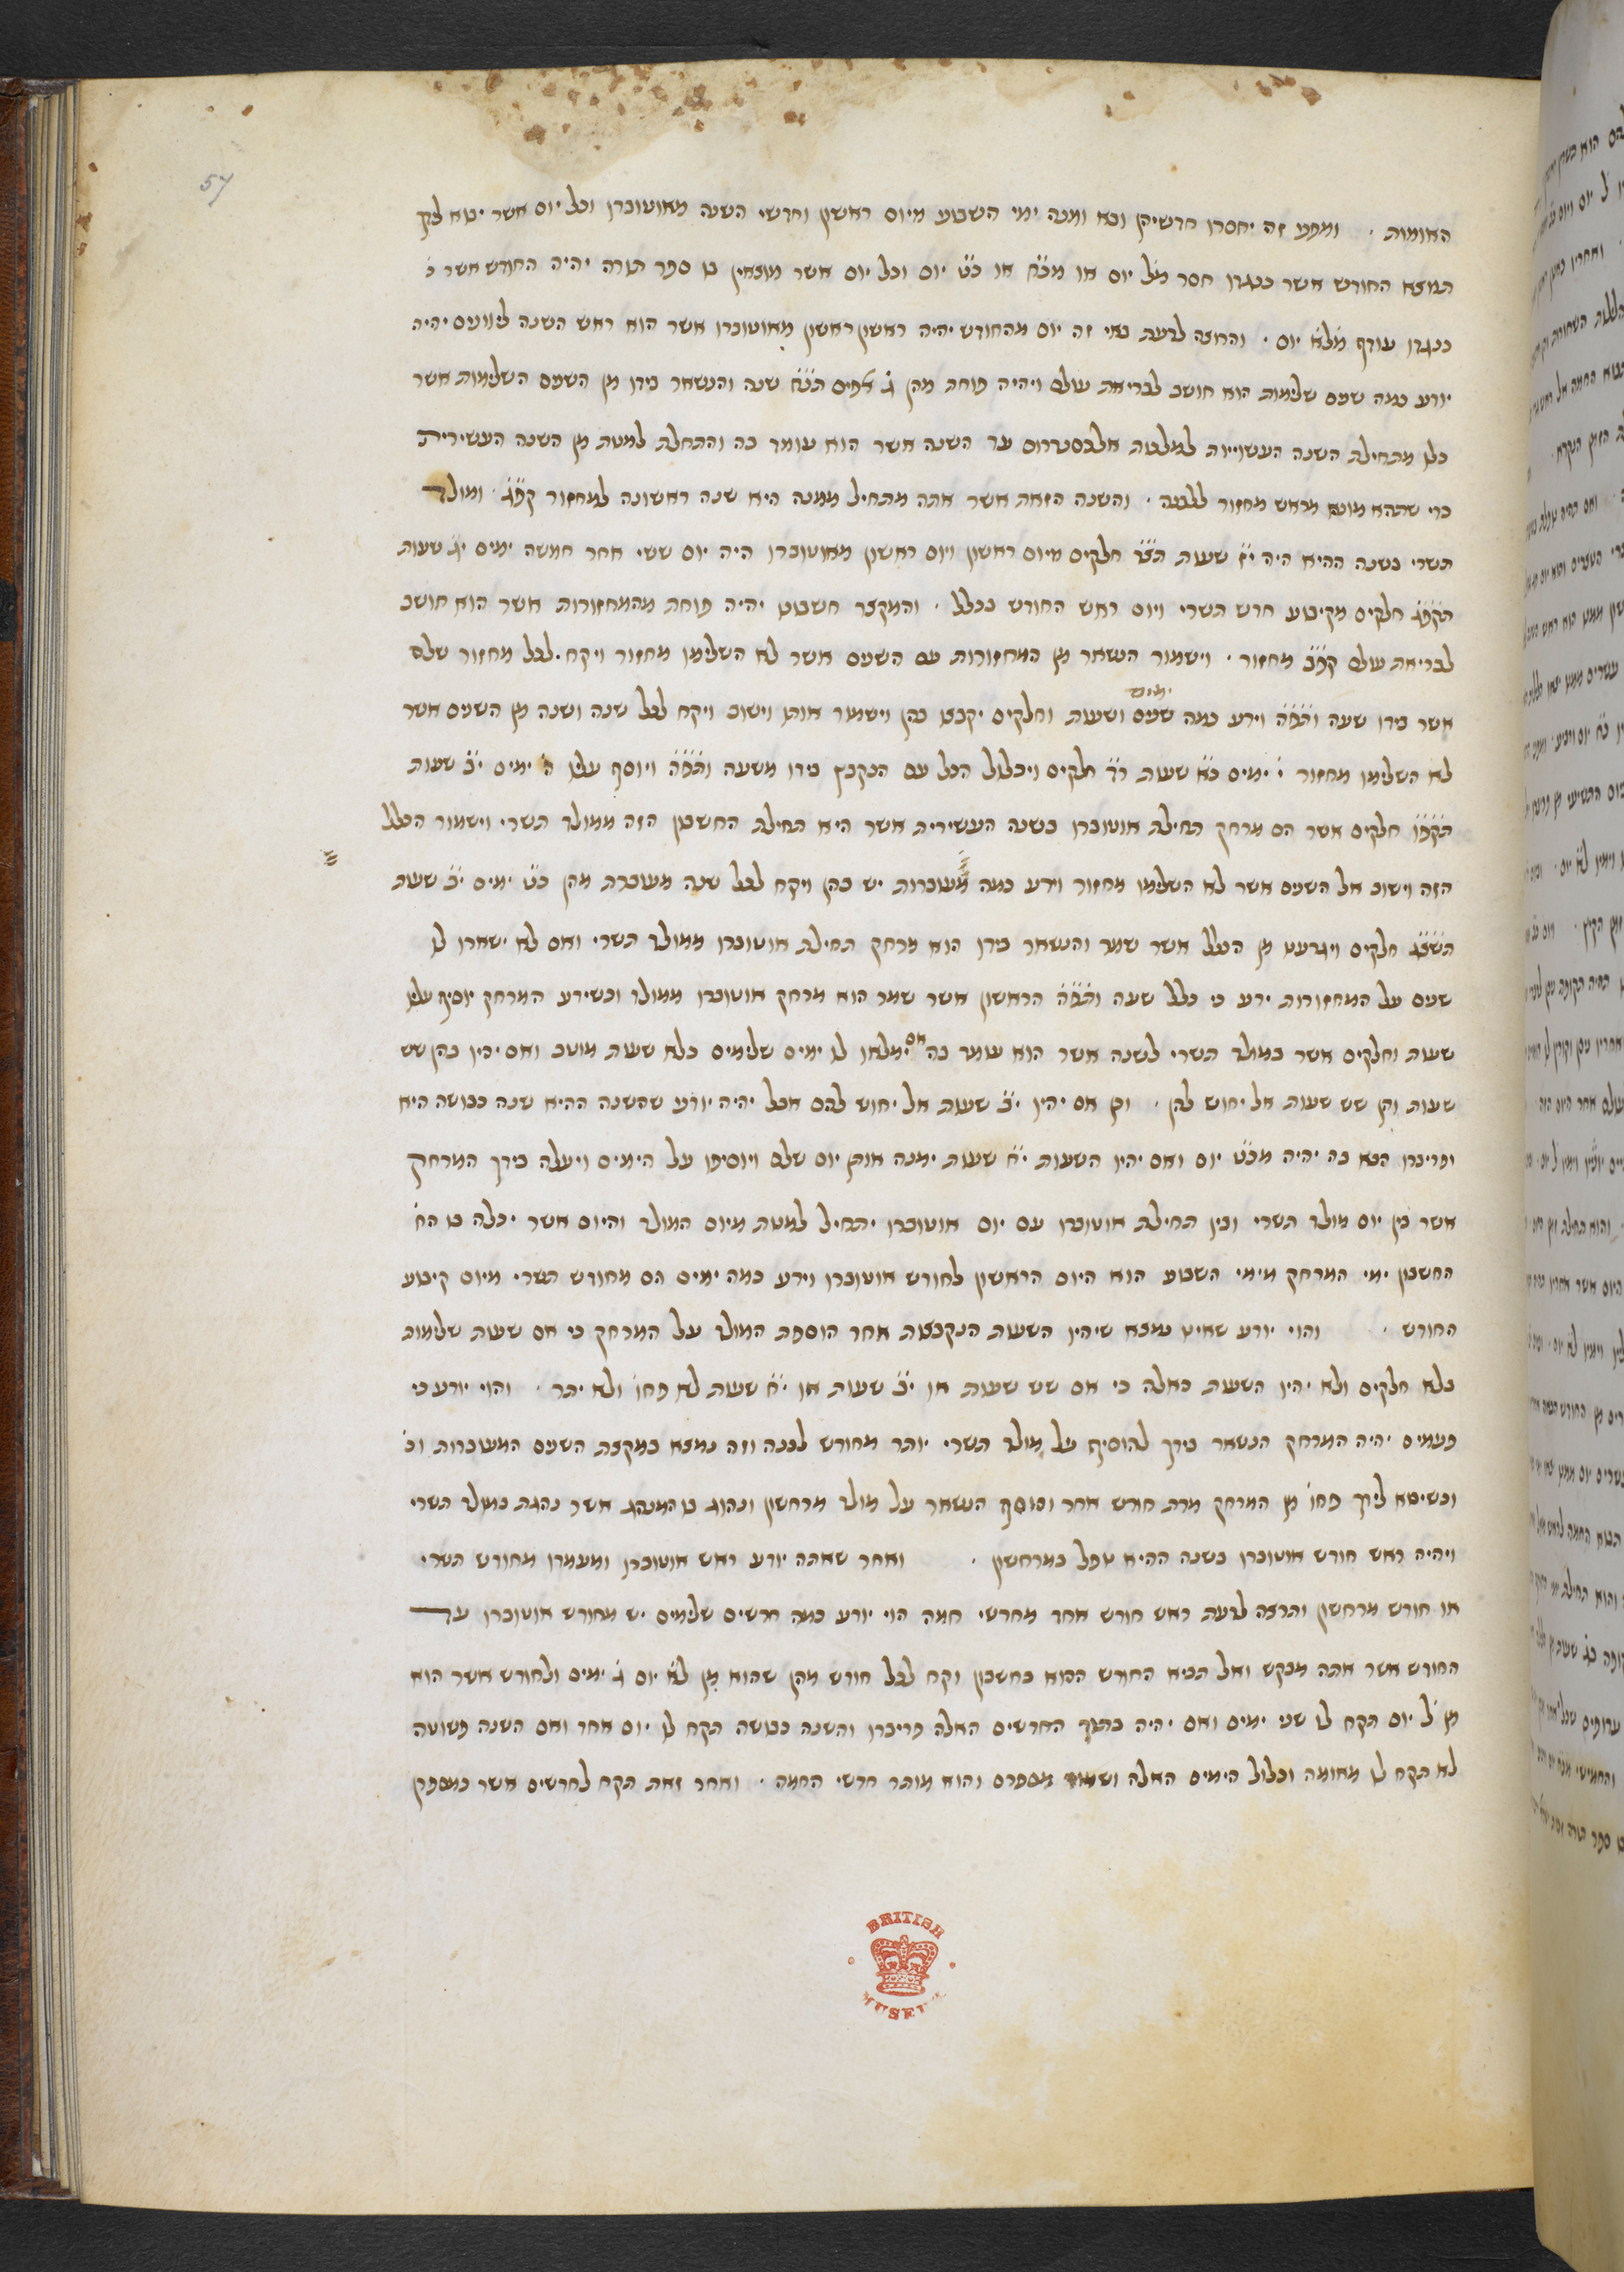 Markings in the margins and within the text, Miscellany: Various astronomical and philosophical works, Add MS 26899, Hebrew Manuscripts Digitisation Project, British Library